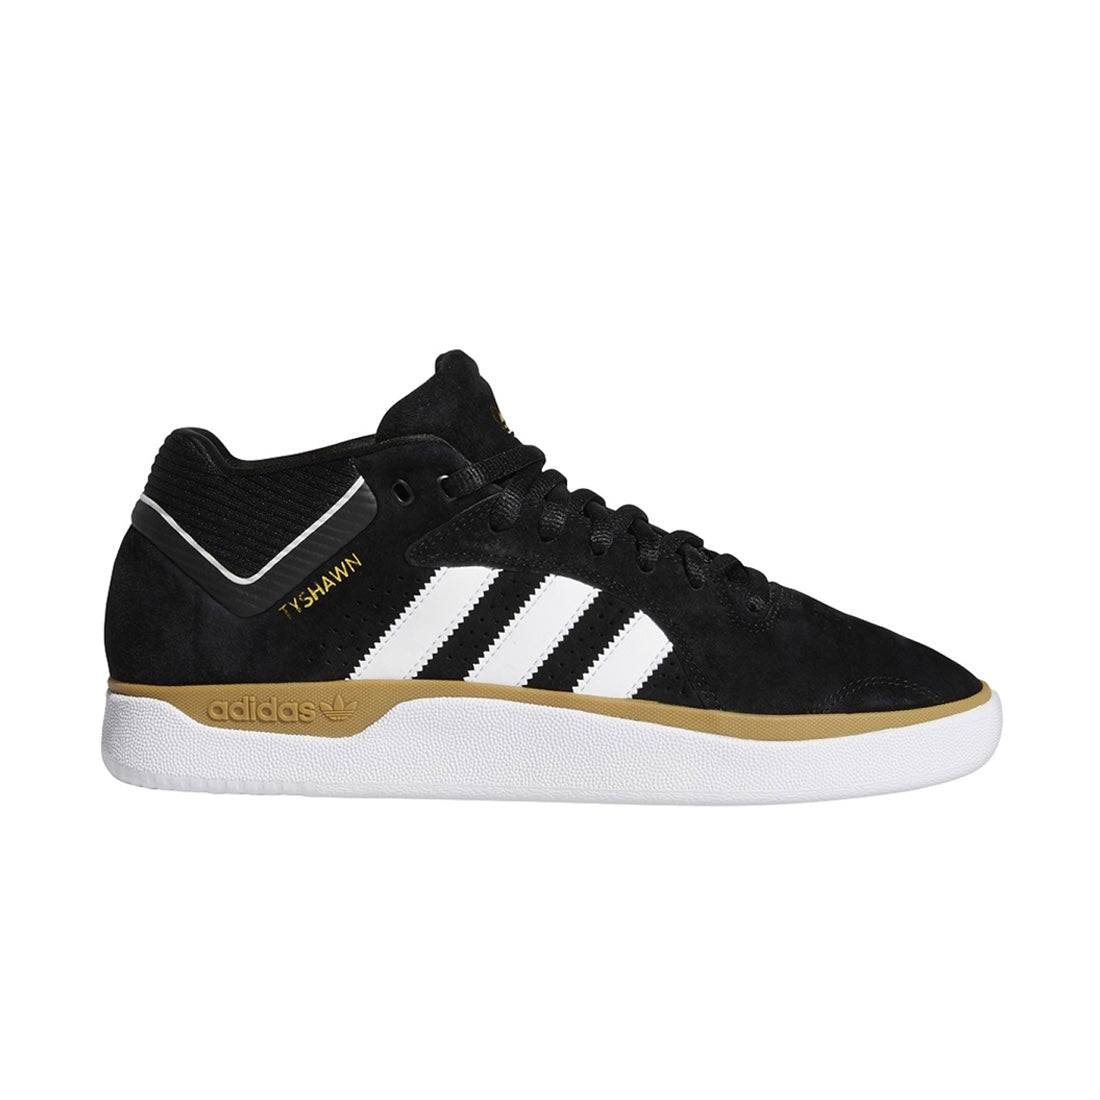 Adidas Tyshawn Jones - Black/White/Gum